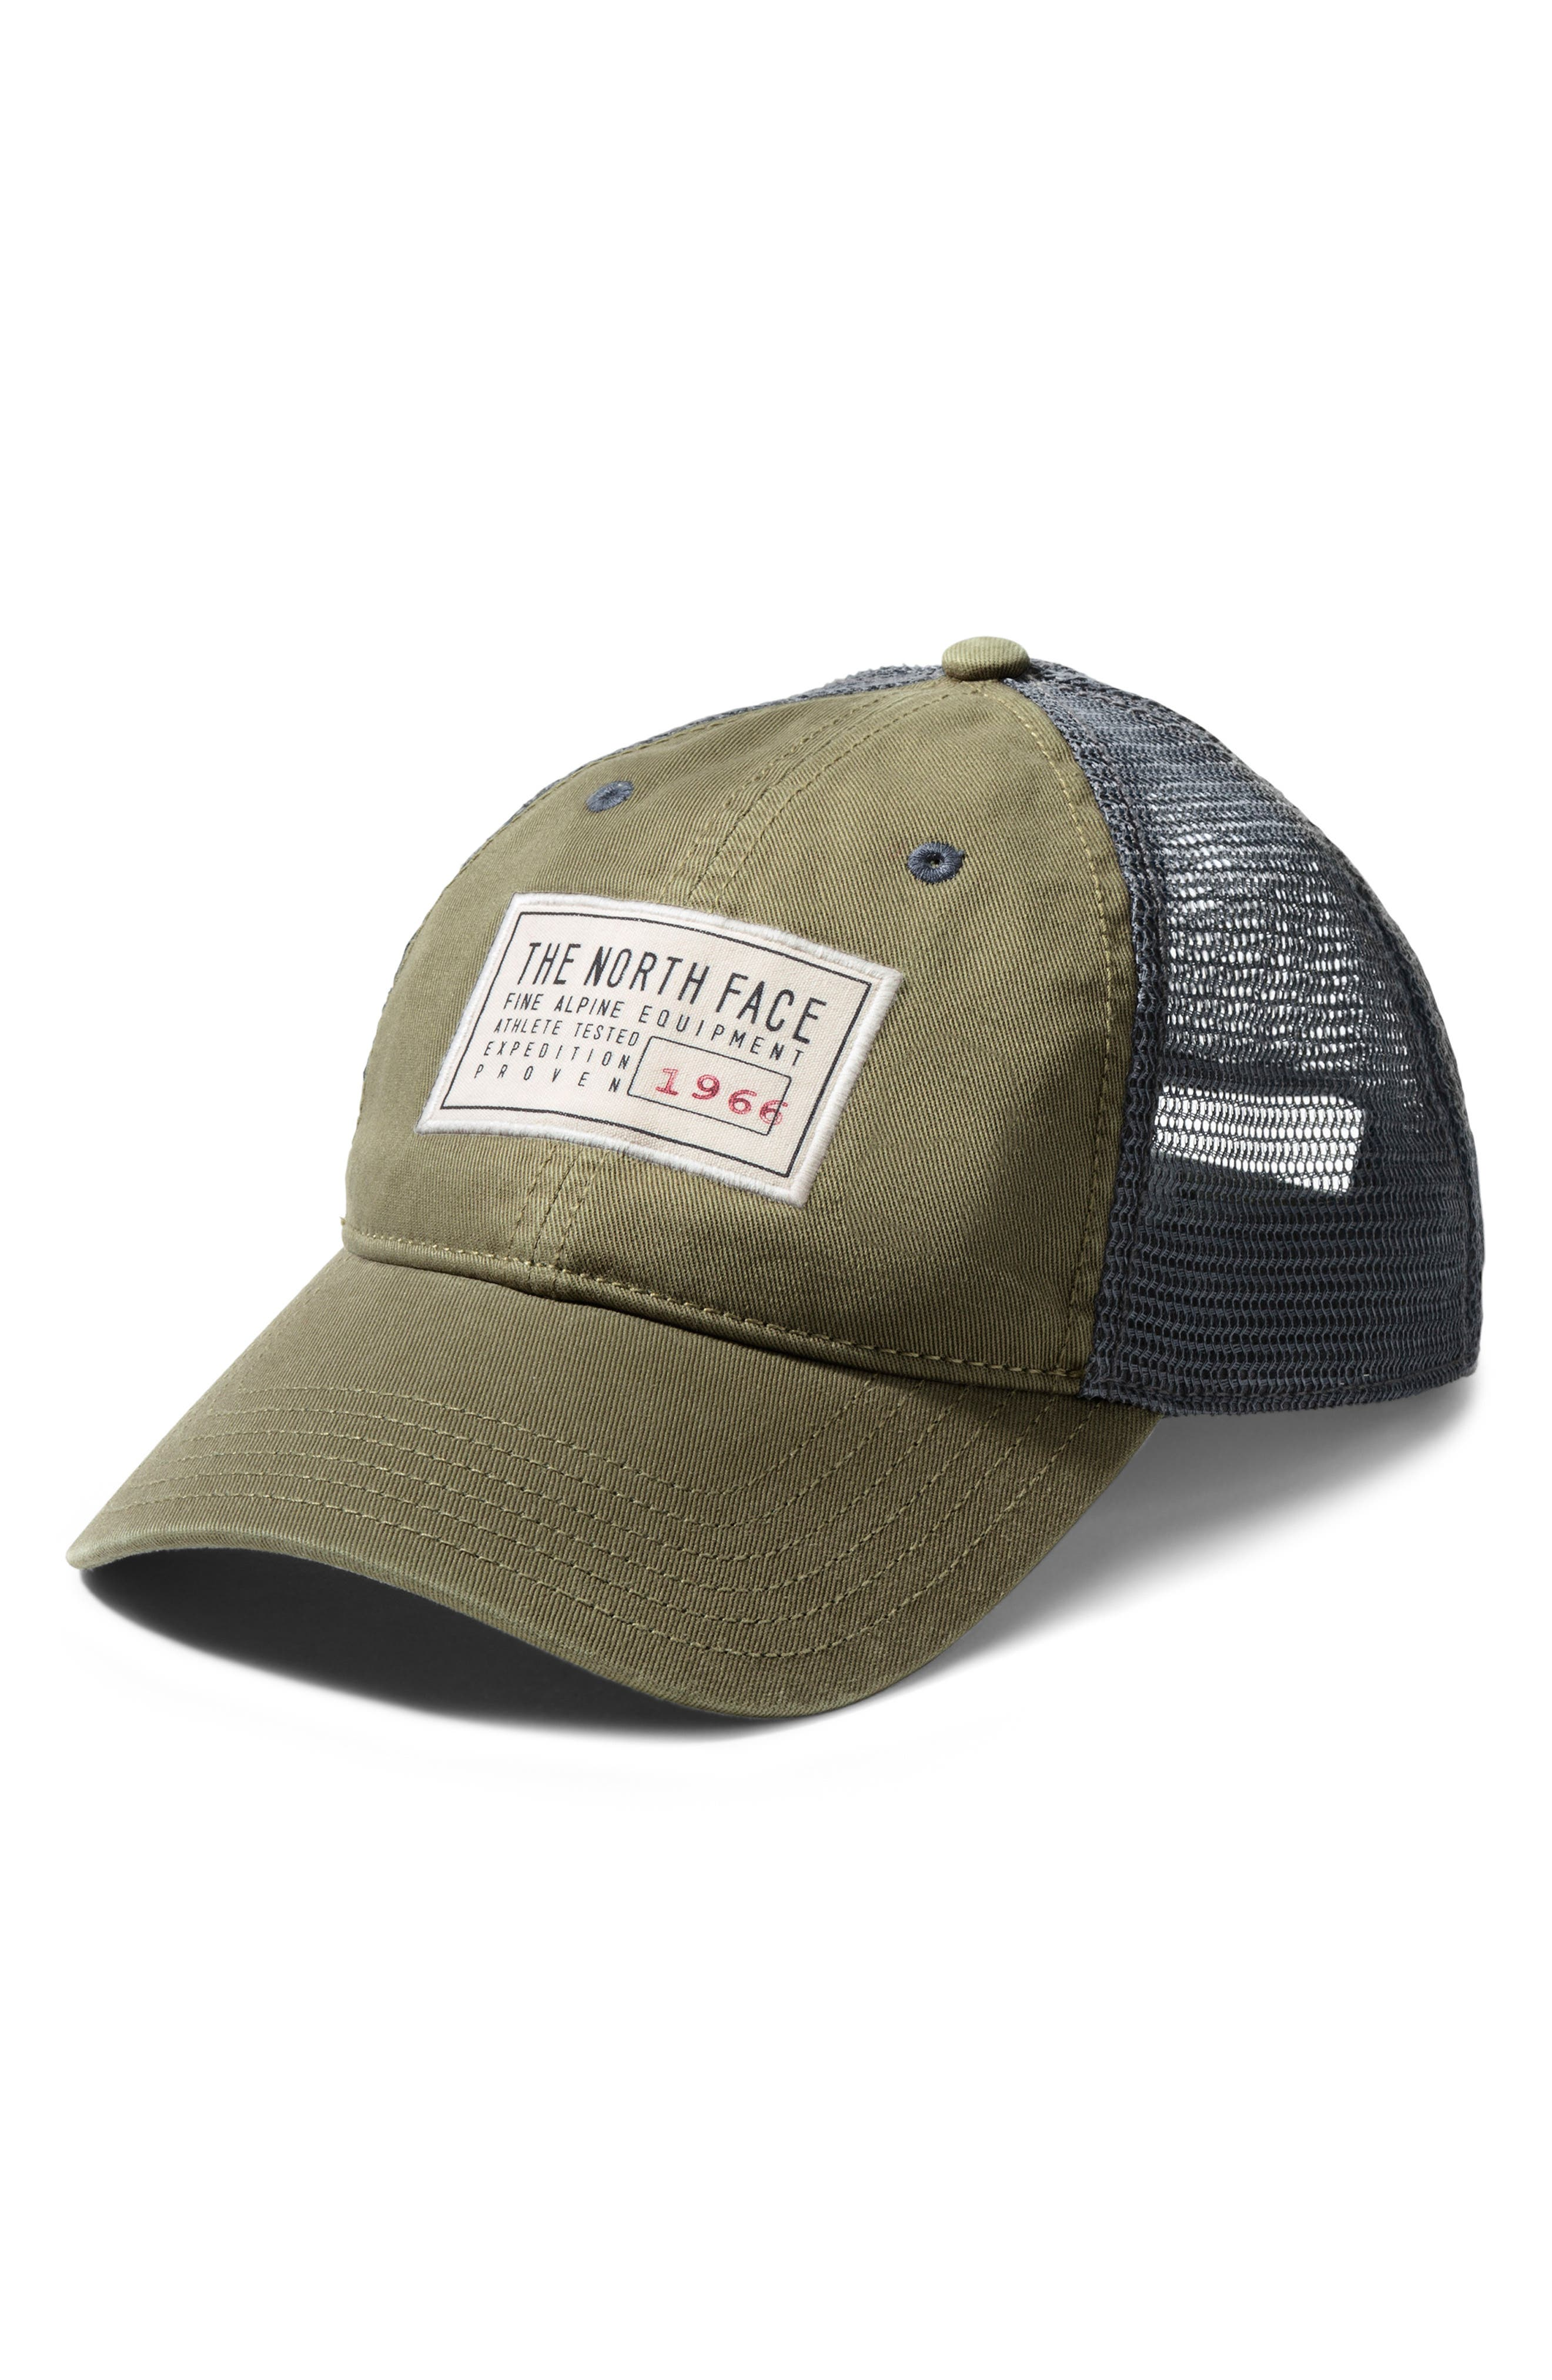 805aa9ccf1e Hats The North Face